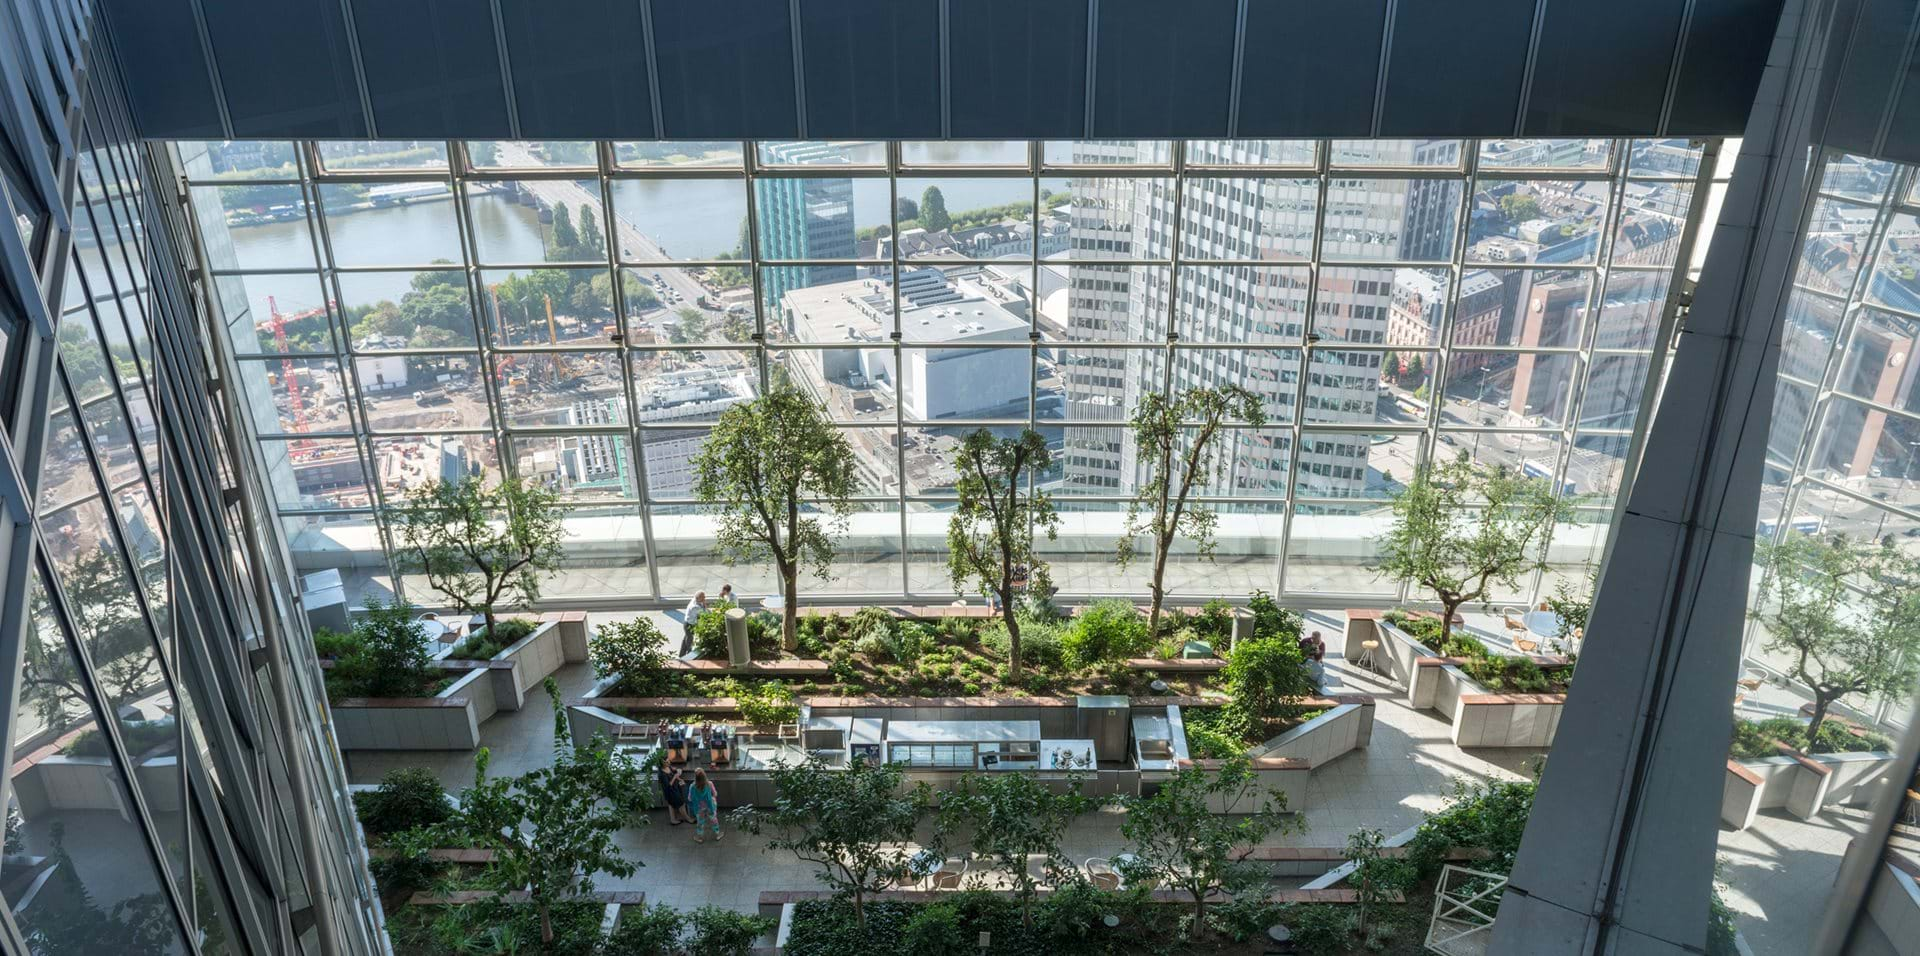 Commerzbank headquarters projects foster partners - Commerzbank london office ...